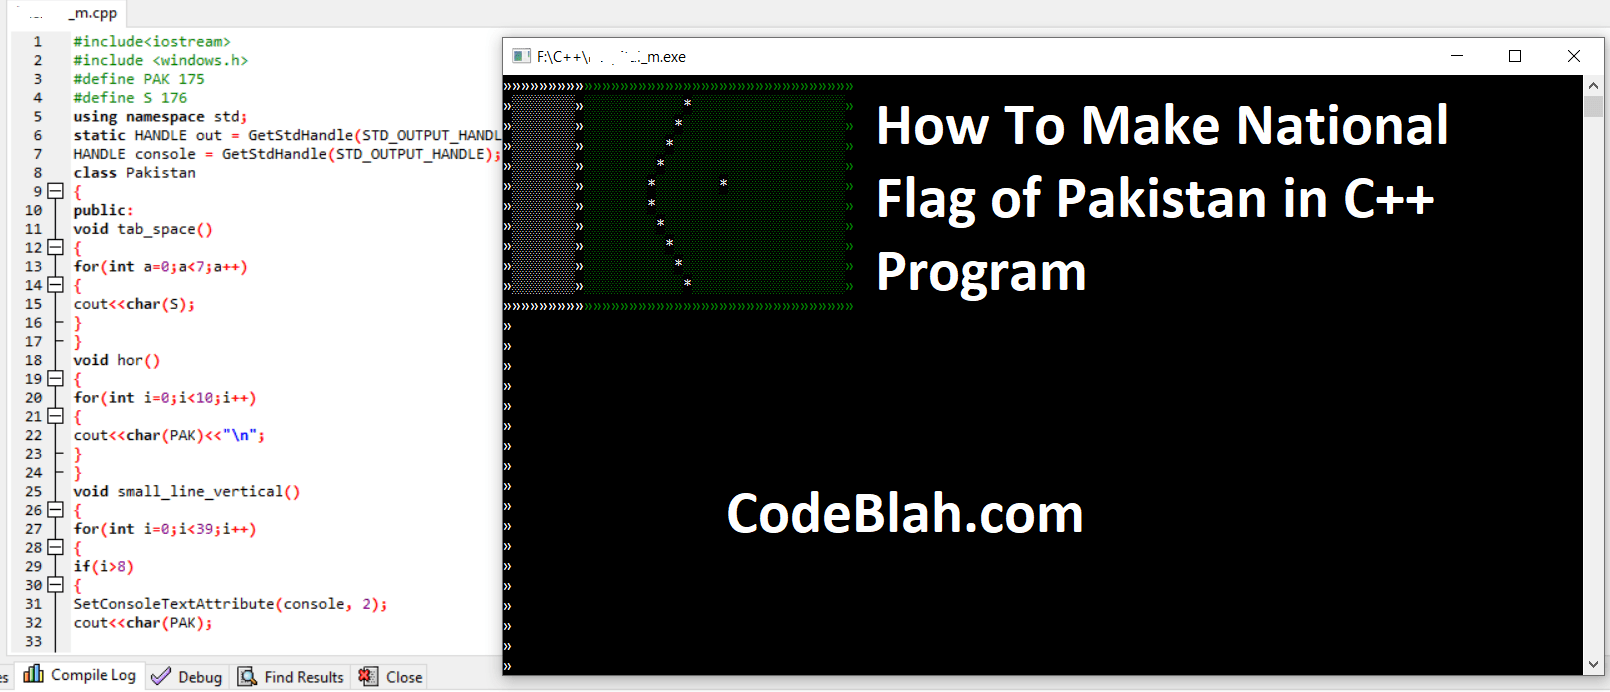 How To Make National Flag of Pakistan in C++ Program